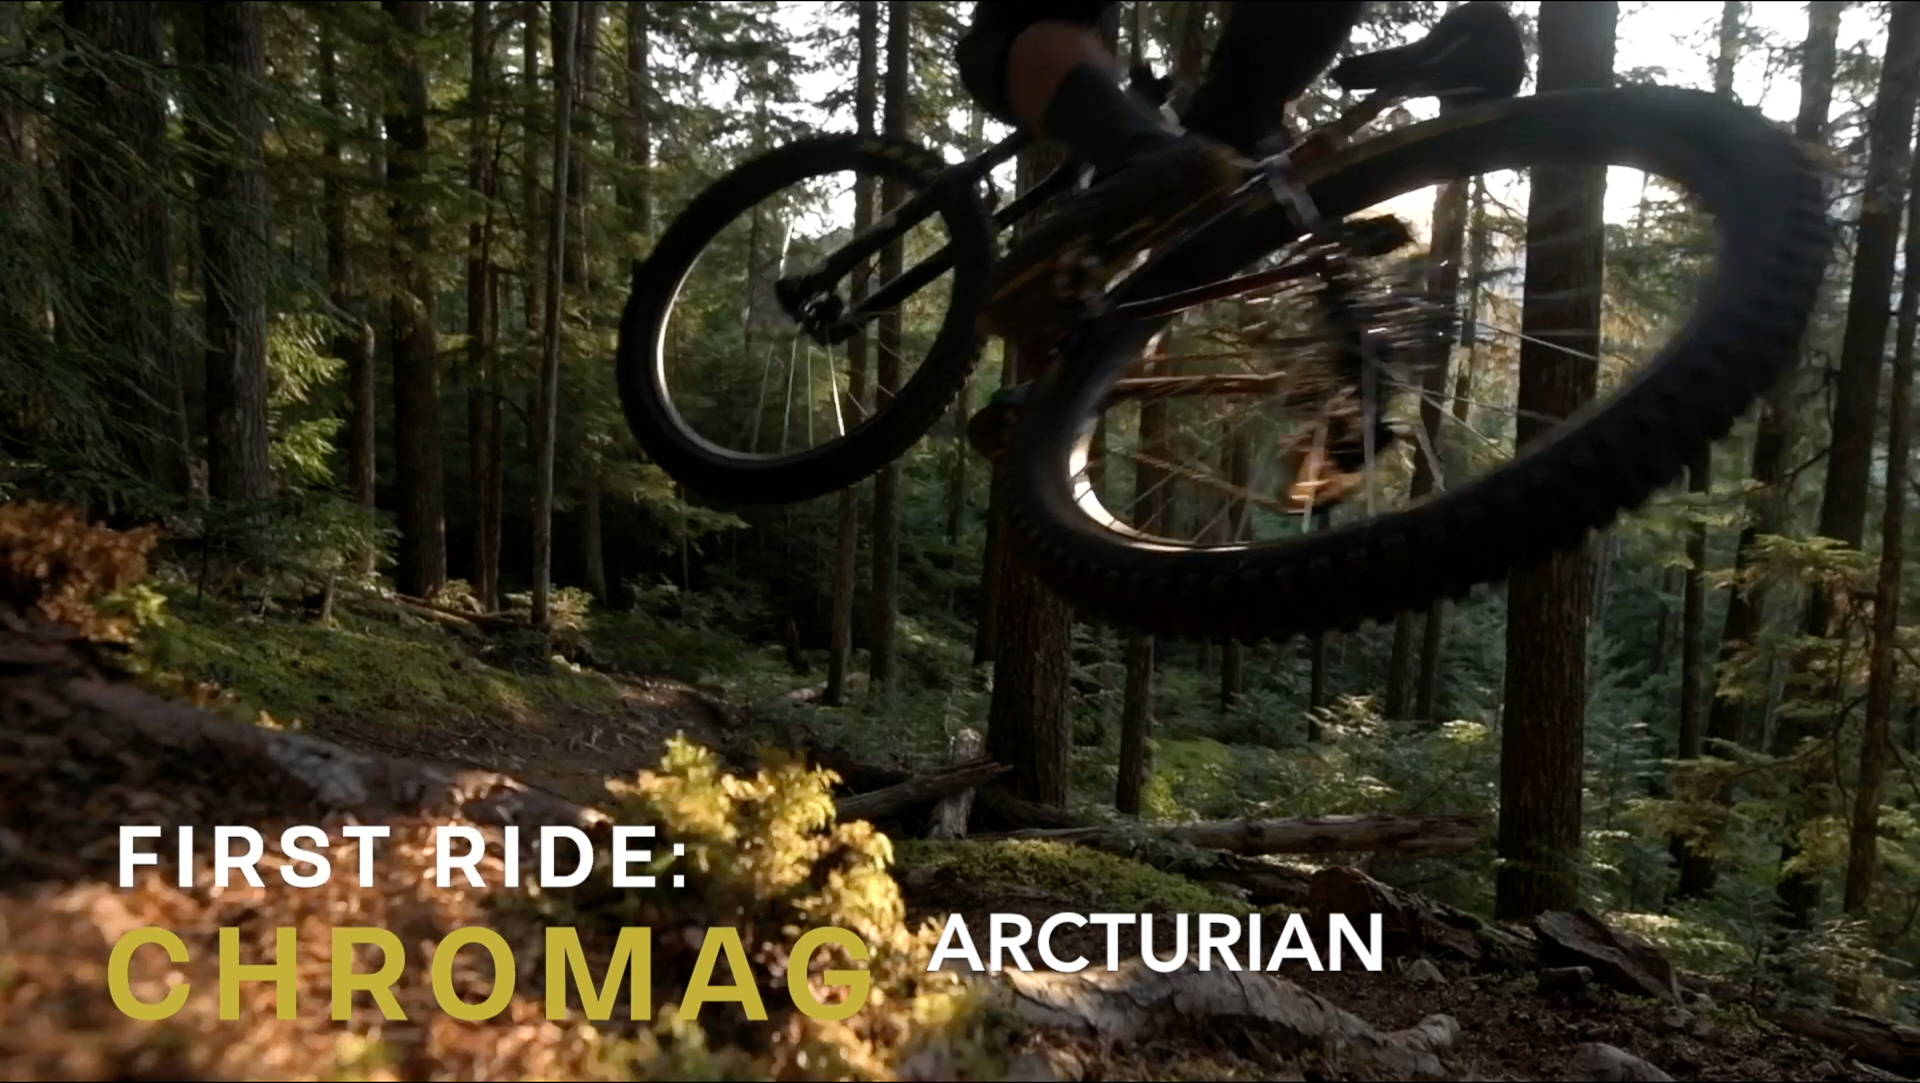 First Ride: Chromag Arcturian